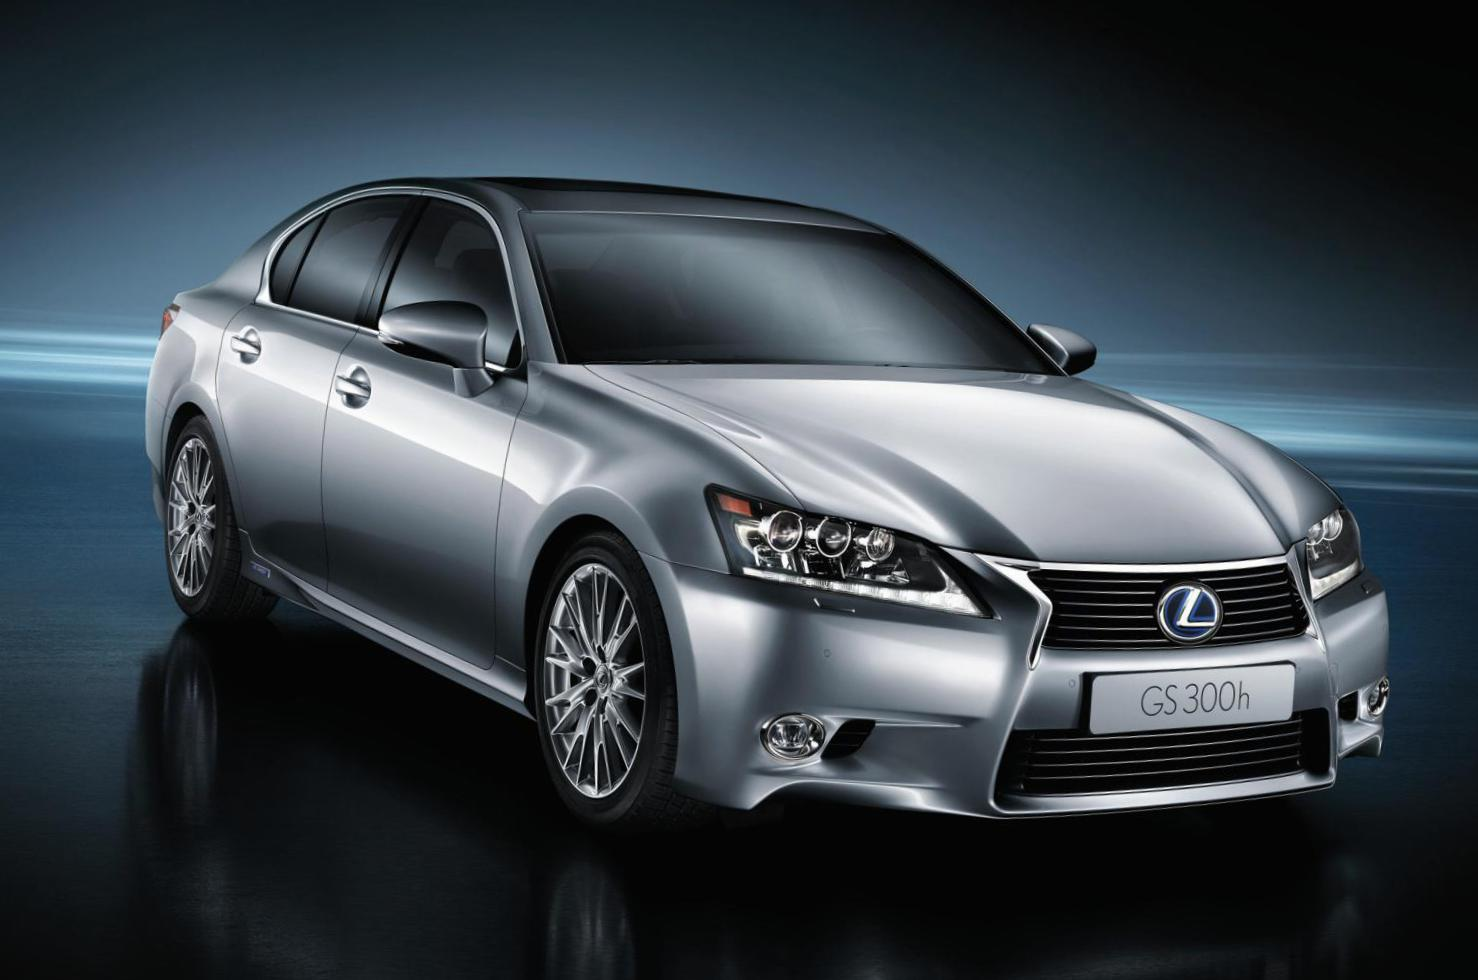 IS 300h Lexus Specification coupe